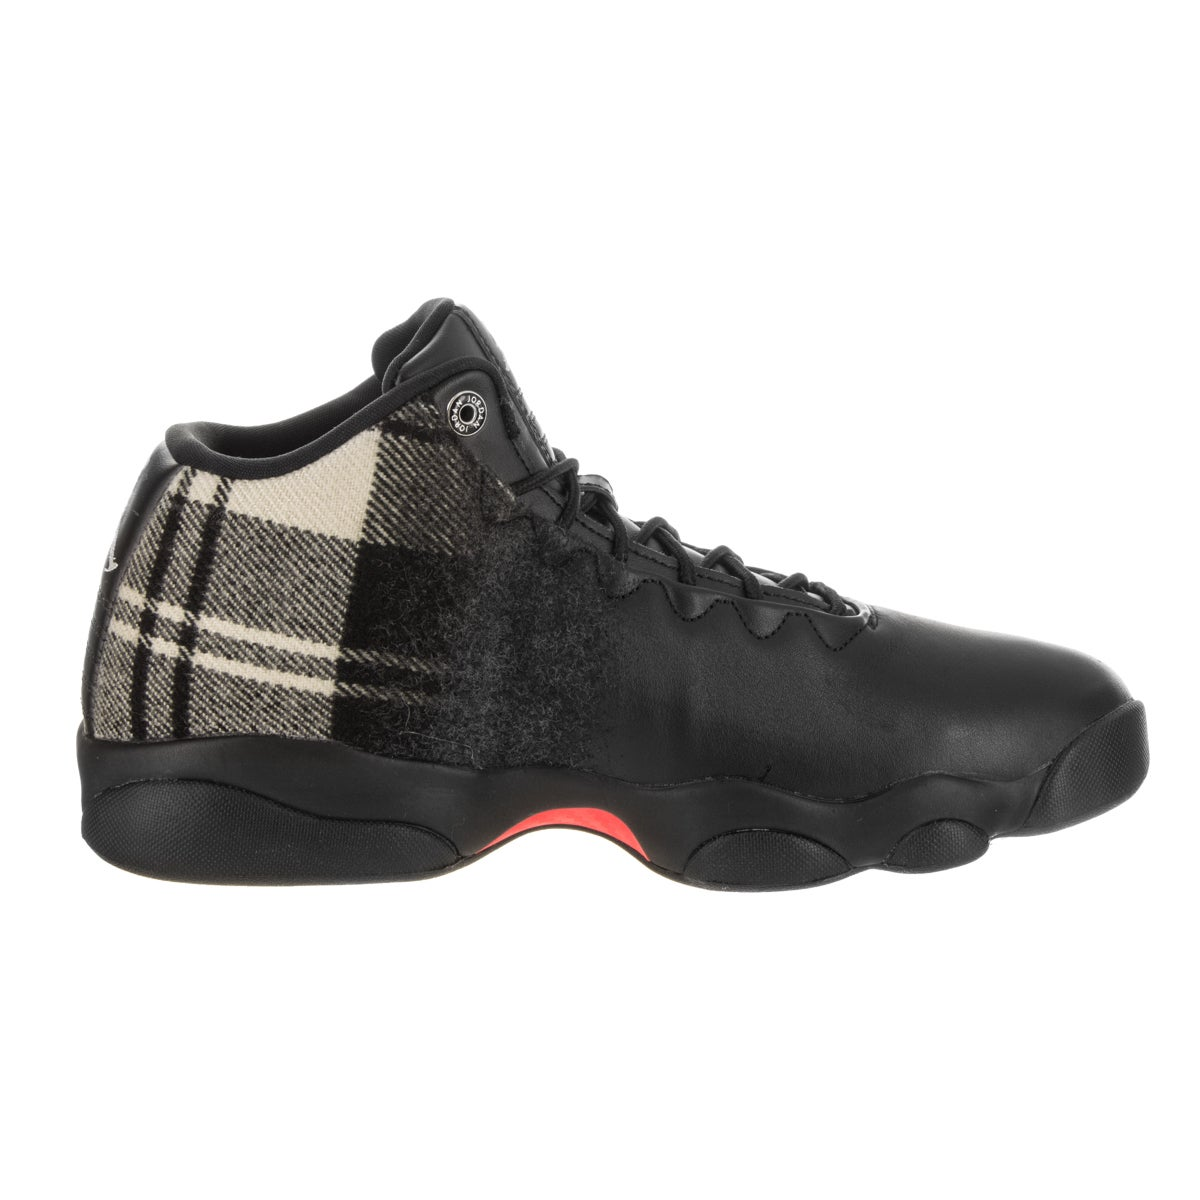 18f5909d0c8 Shop Nike Men s Jordan Horizon Low Premium Black Leather Basketball Shoe -  Free Shipping Today - Overstock - 14746813